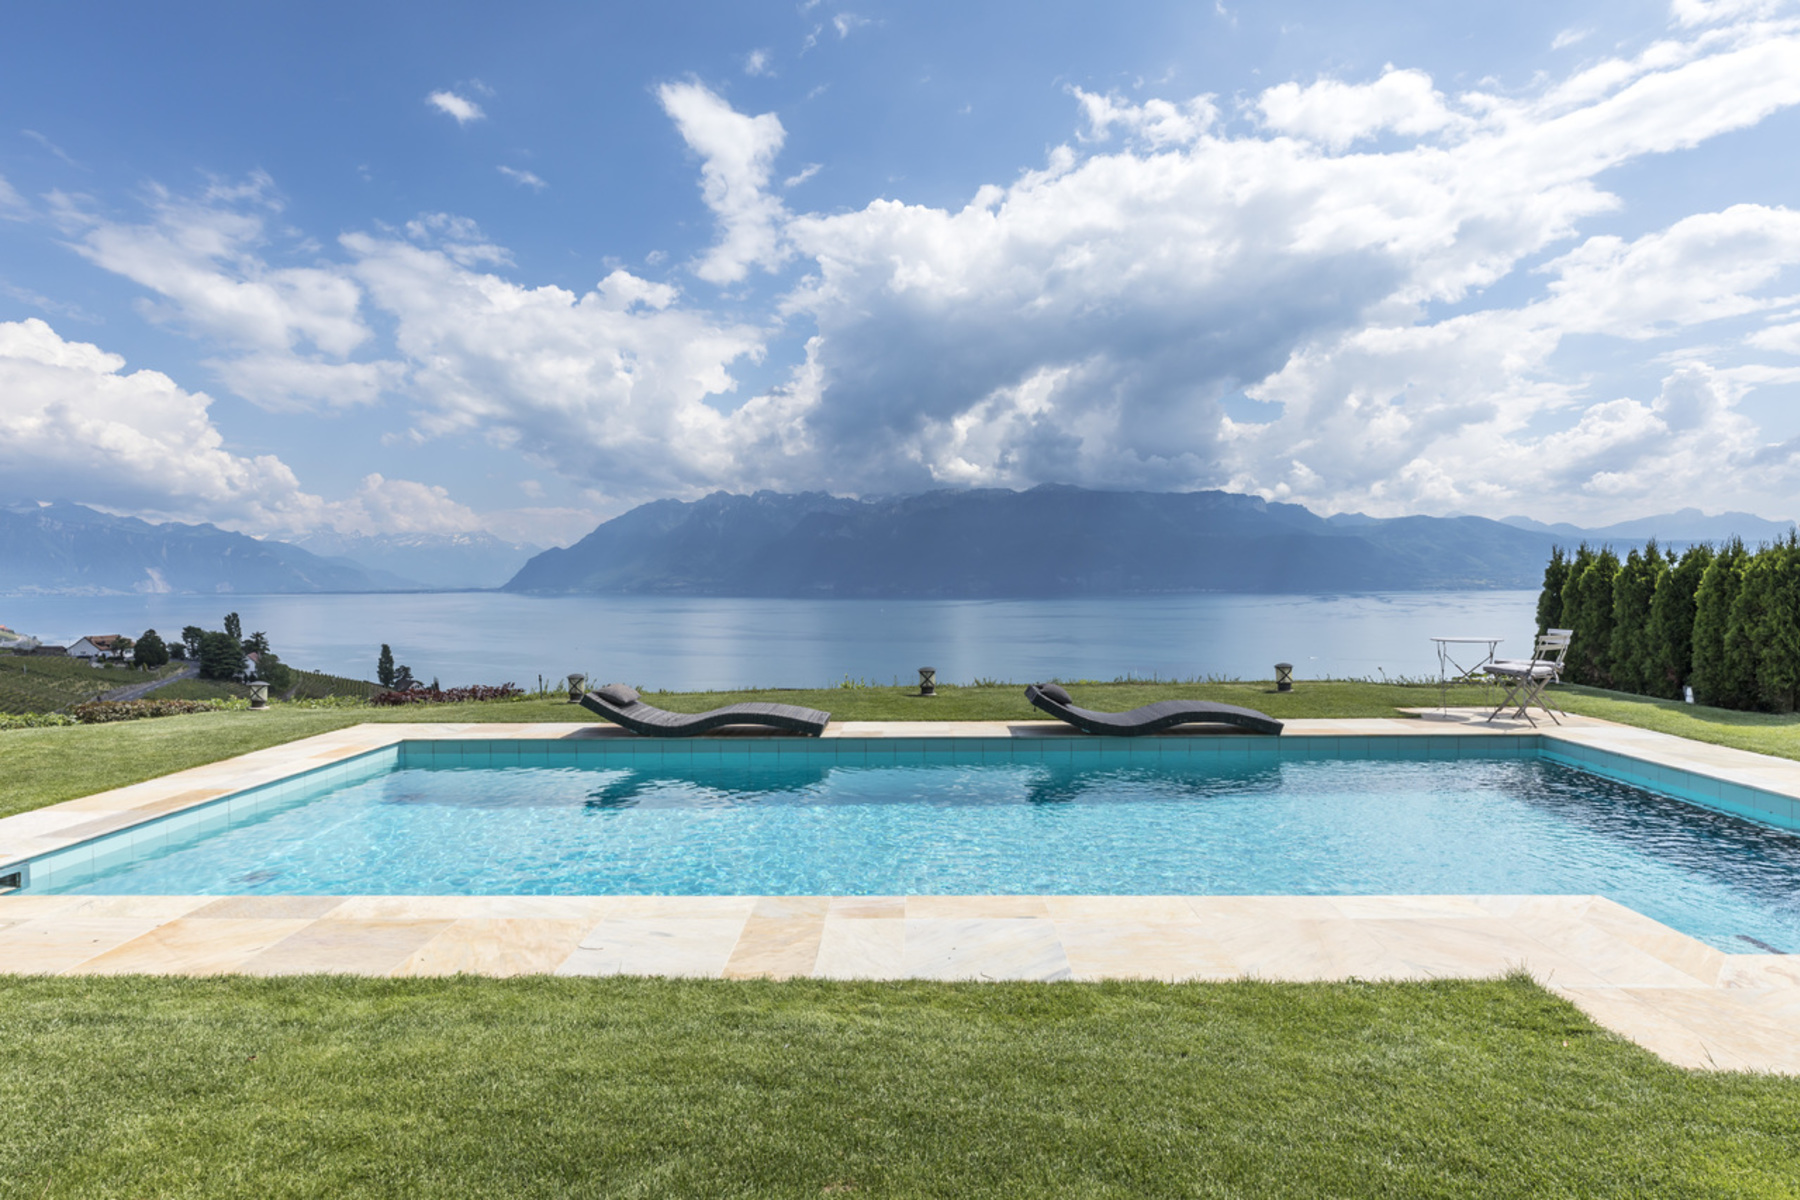 Single Family Home for Sale at A piece of paradise in the heart of a UNESCO world heritage site Route de Chenaux 8, Grandvaux, Vaud, 1091 Switzerland